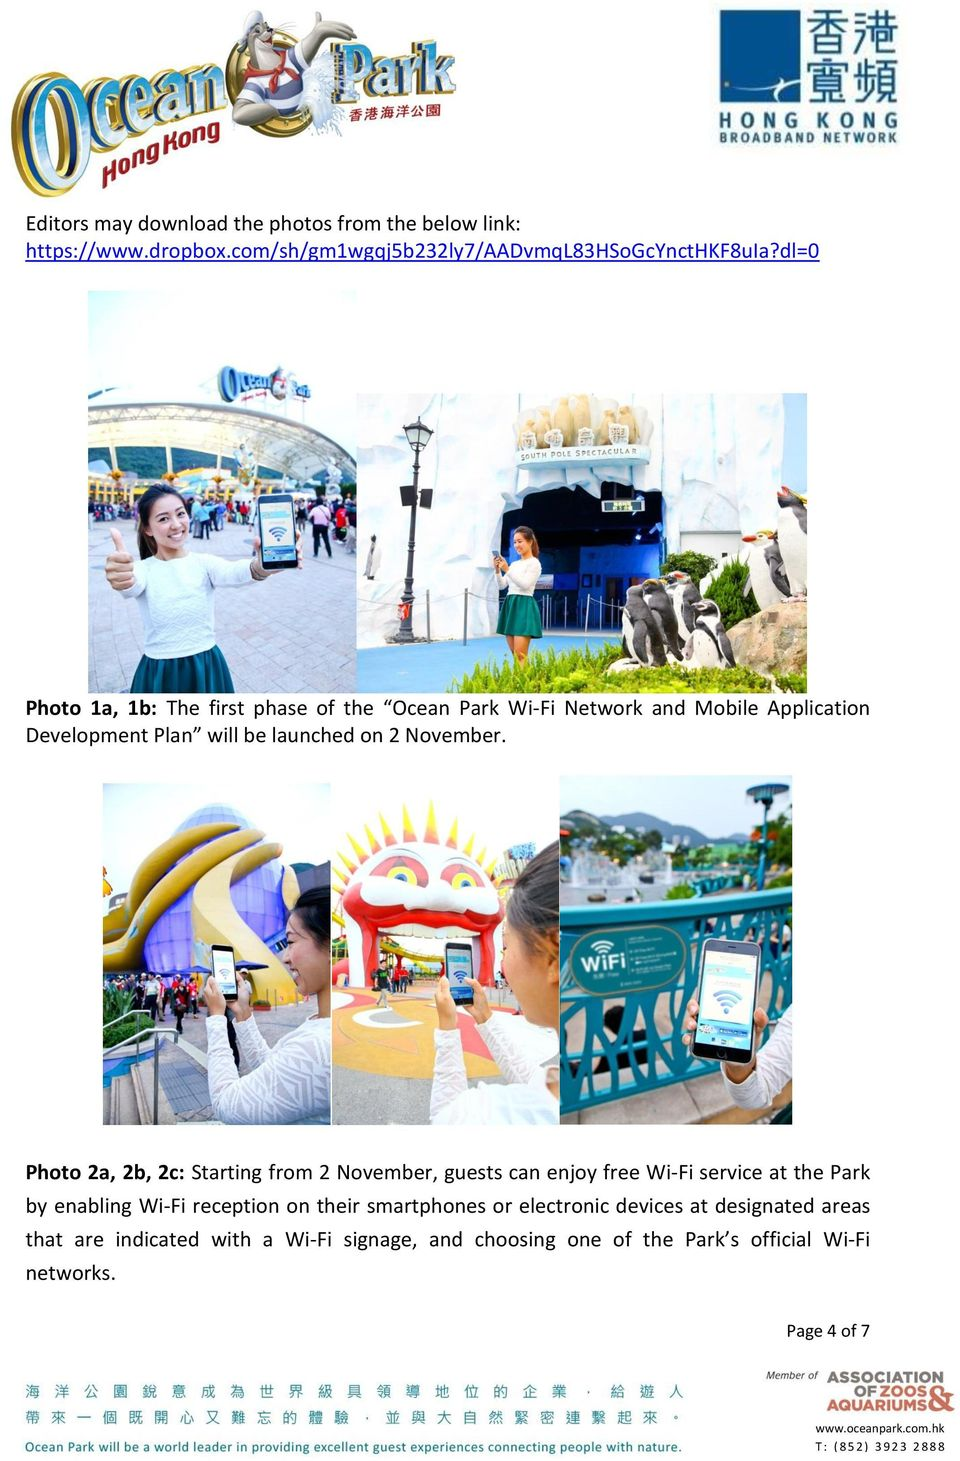 Photo 2a, 2b, 2c: Starting from 2 November, guests can enjoy free Wi-Fi service at the Park by enabling Wi-Fi reception on their